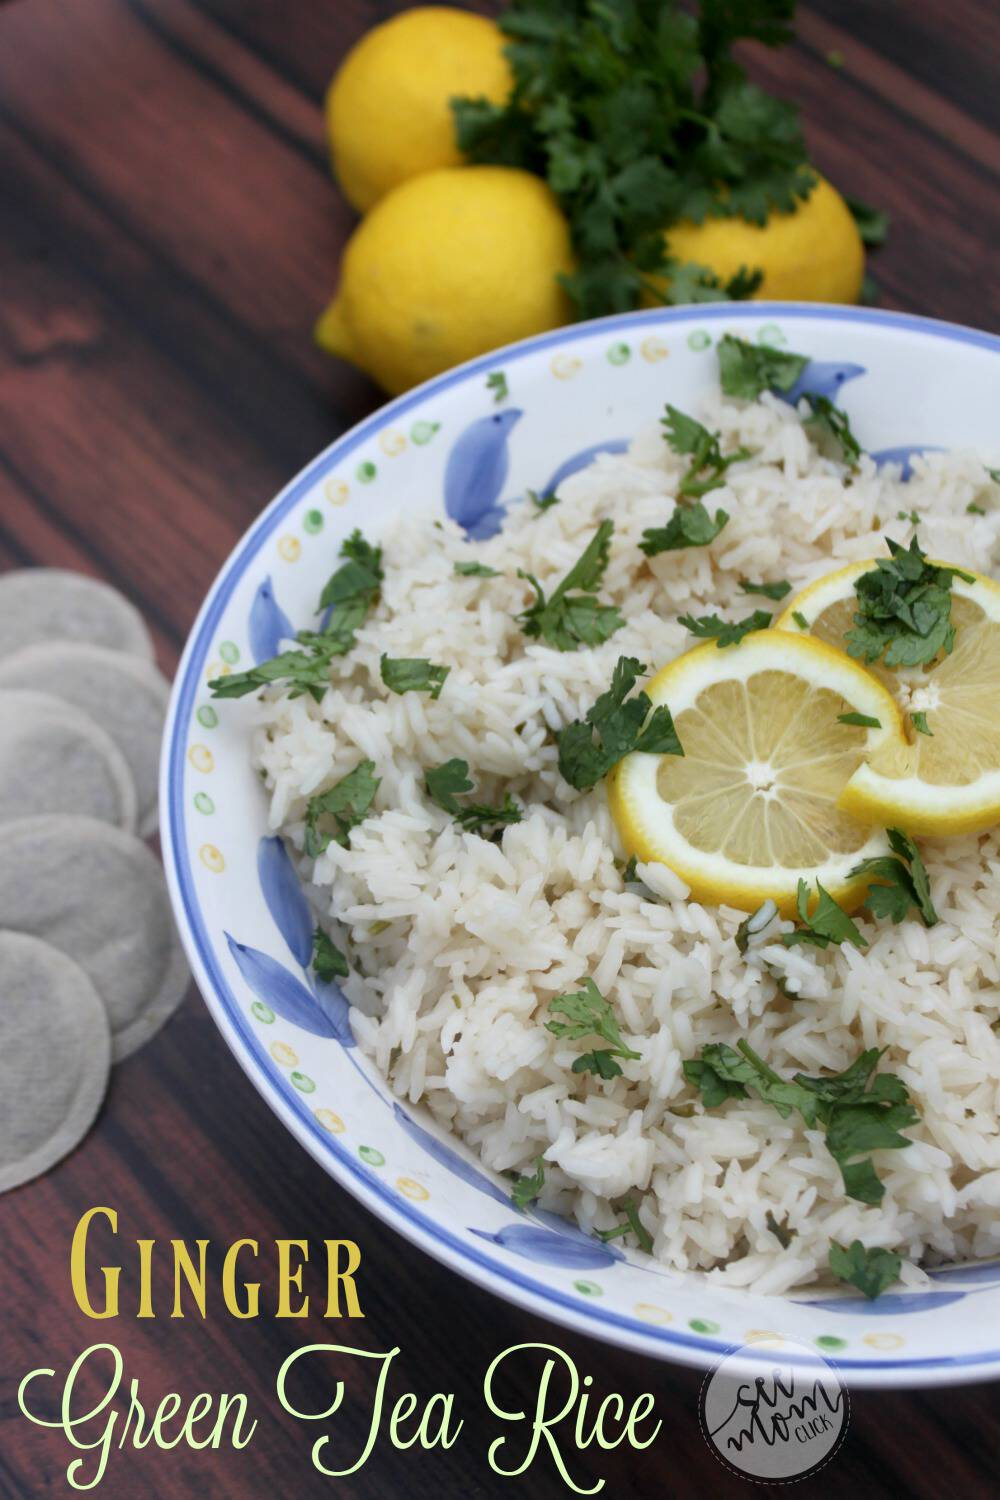 This Ginger Green Tea Rice Recipe is a really easy way to jazz up a side dish recipe. We love it with tacos! A fun twist on your basic rice recipe that pairs perfectly with your favorite spicy dishes. Yum!